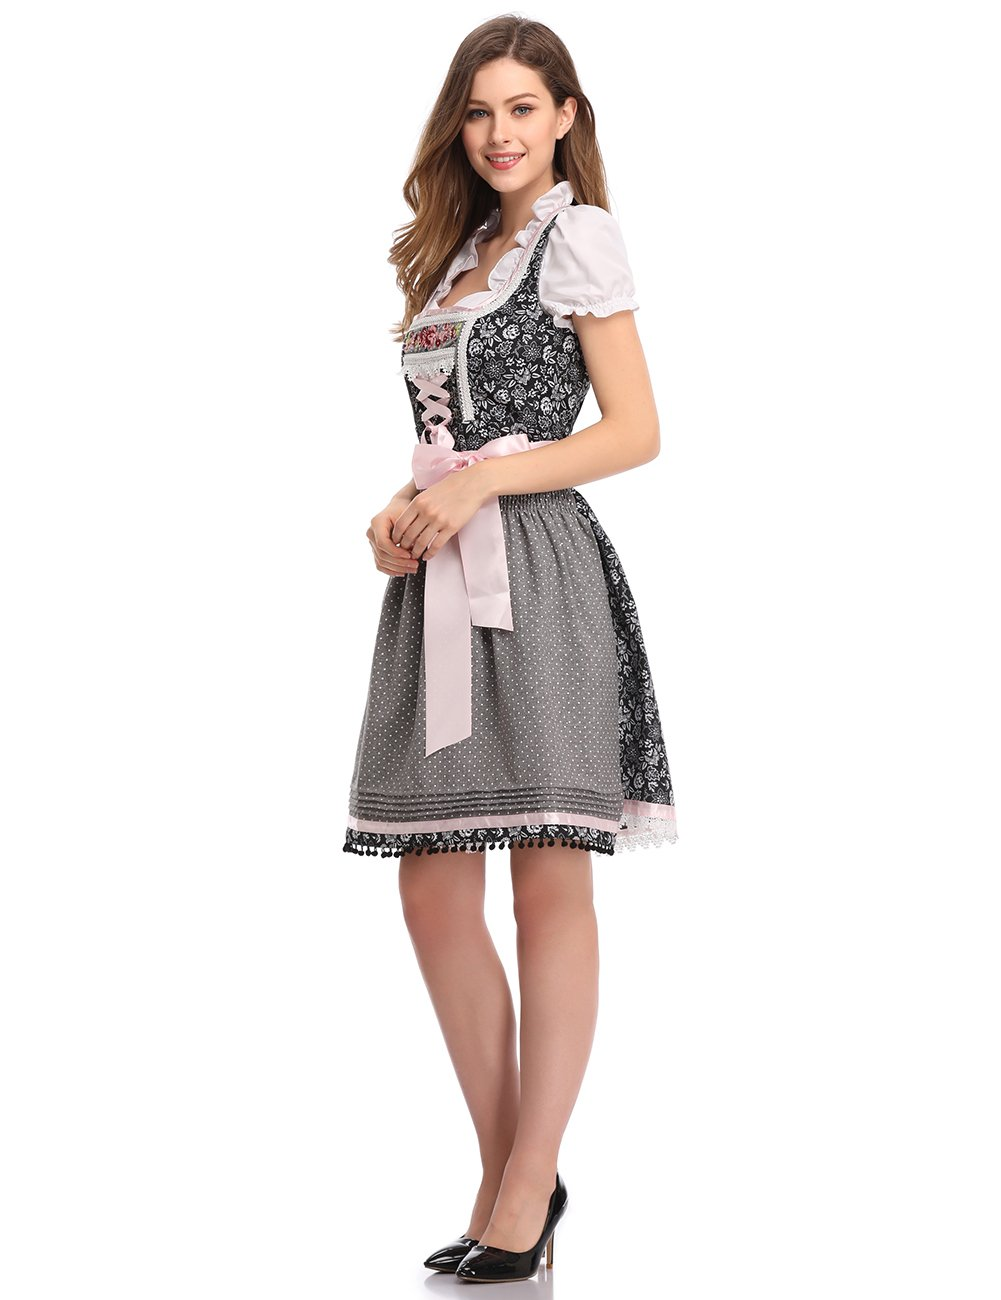 Clearlove 3pcs Women's Pink Floral Traditional Dirndl Set - Dress, Blouse, Apron for Oktoberfest Carnival Theme Party Cosplay Grey XXL